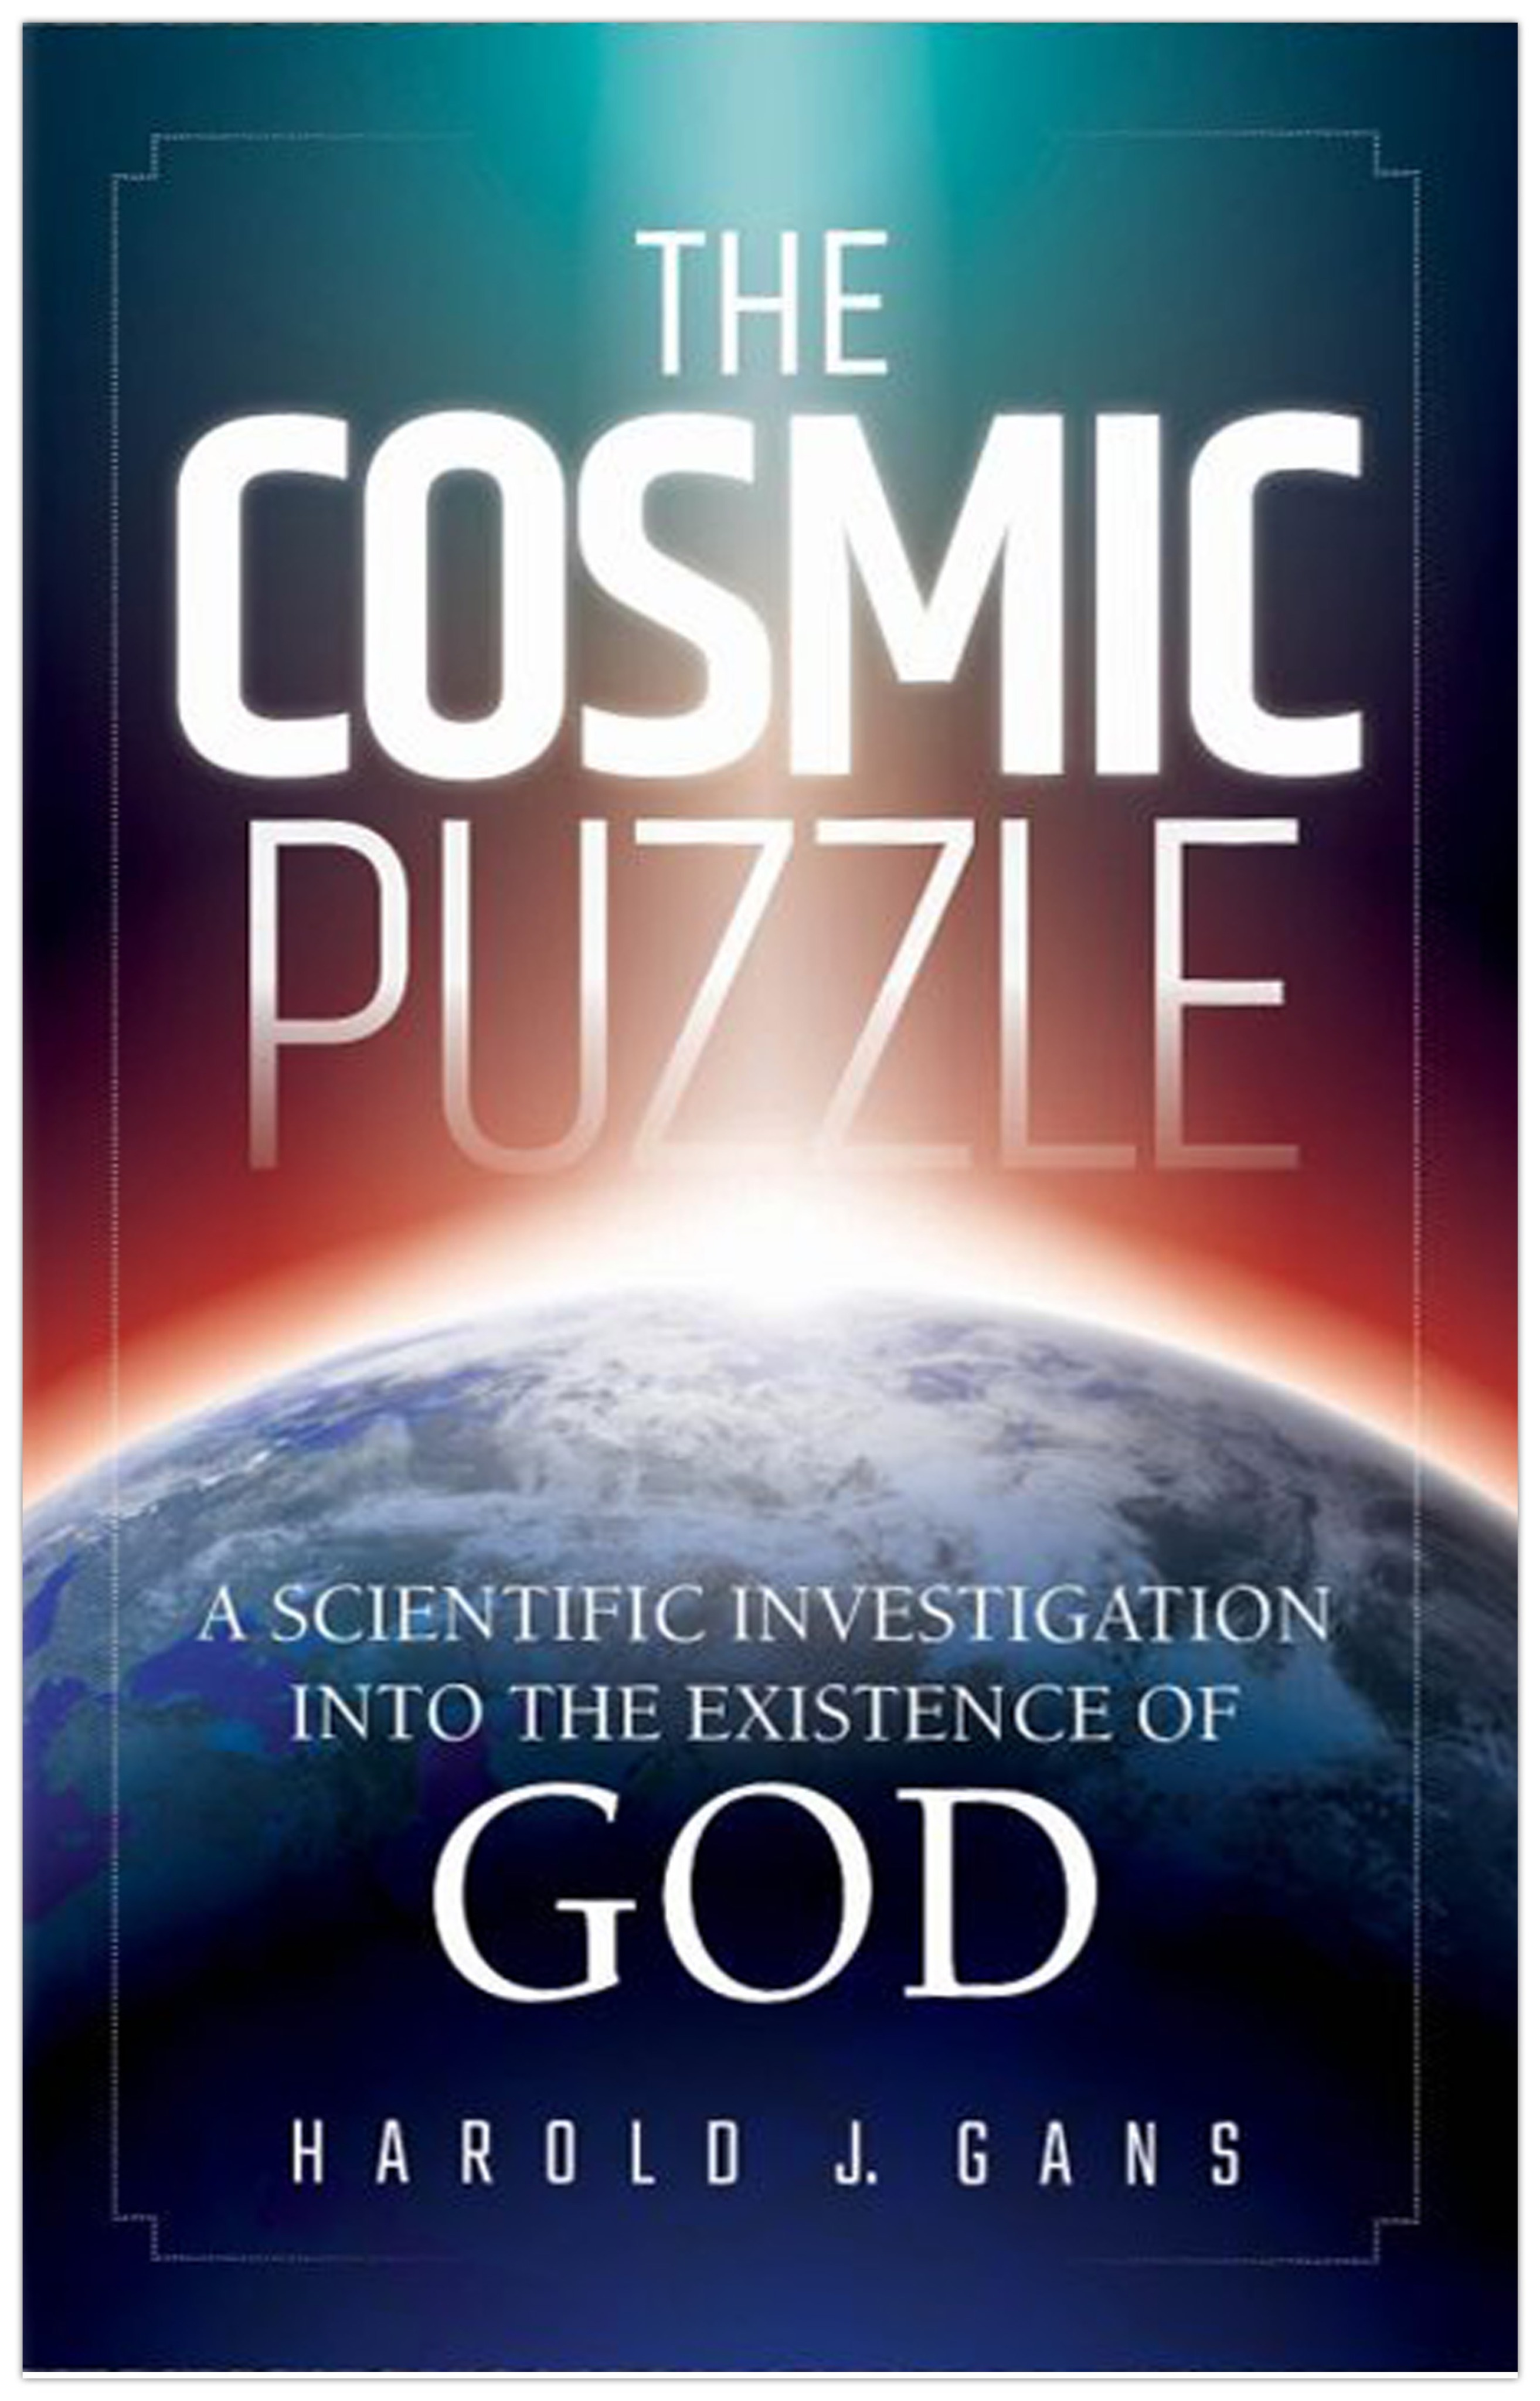 The Cosmic Puzzle